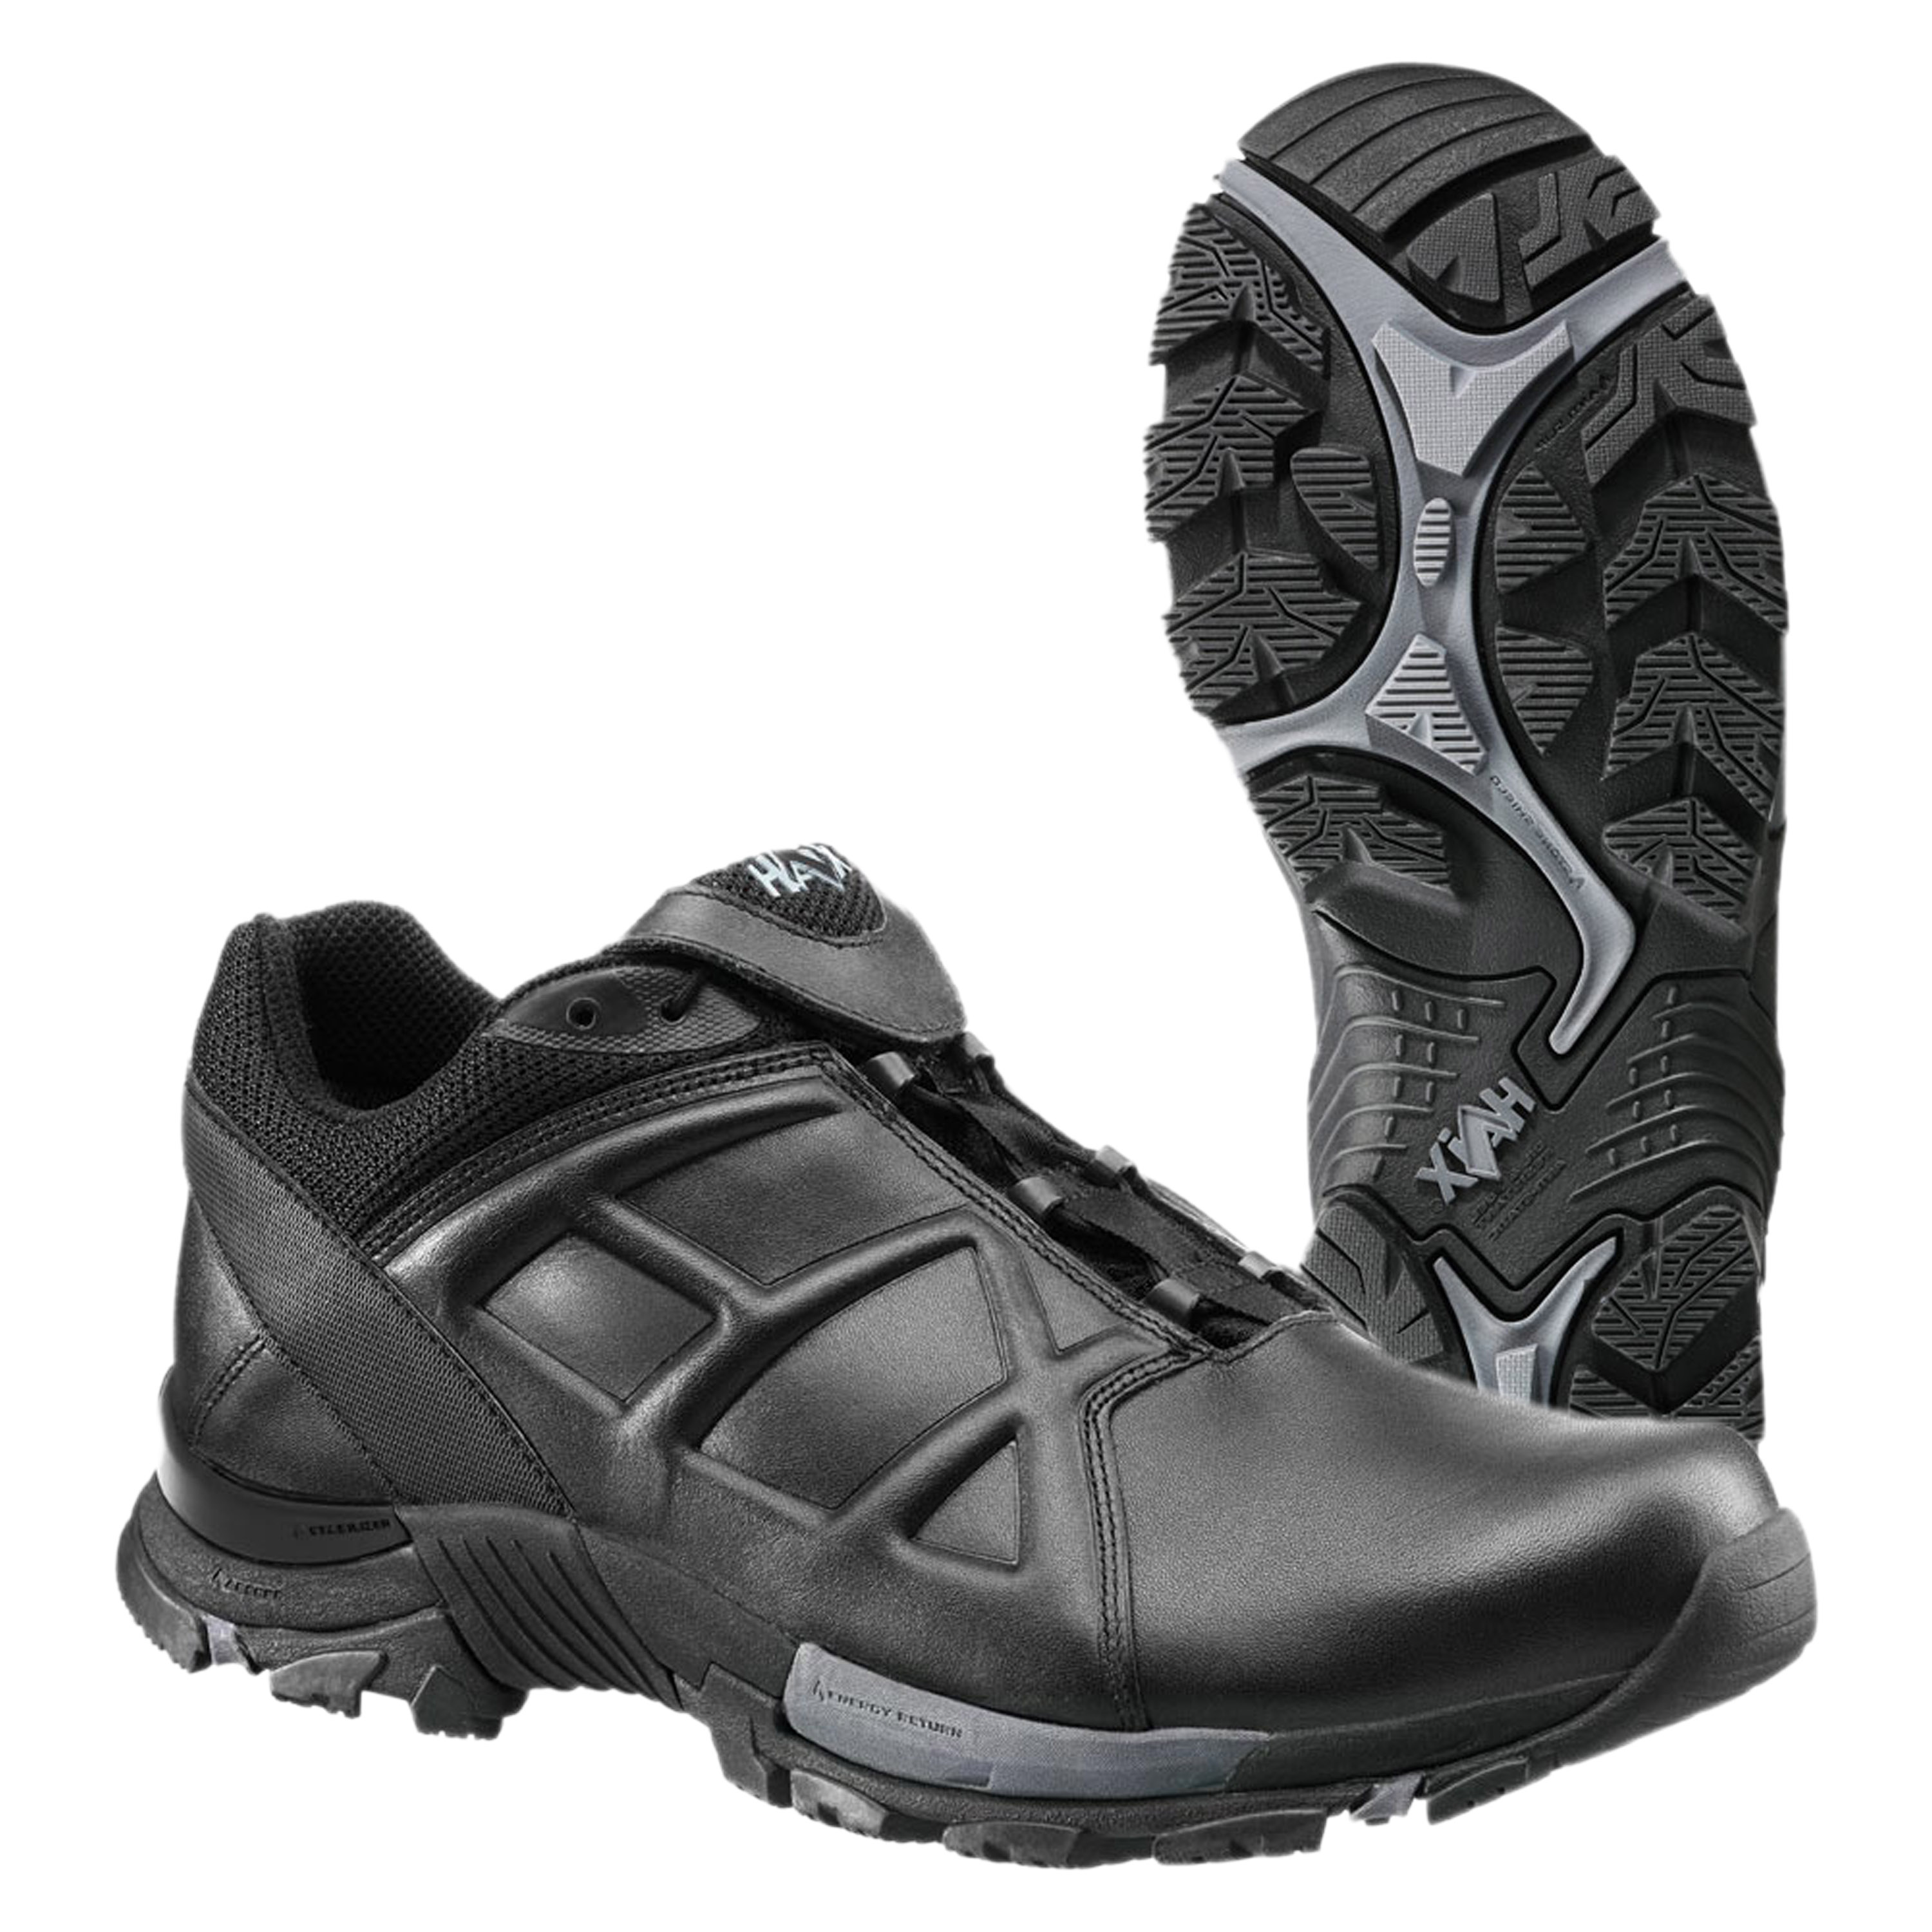 Haix Funktionsschuh Black Eagle Tactical 20 Low 2.0 schwarz